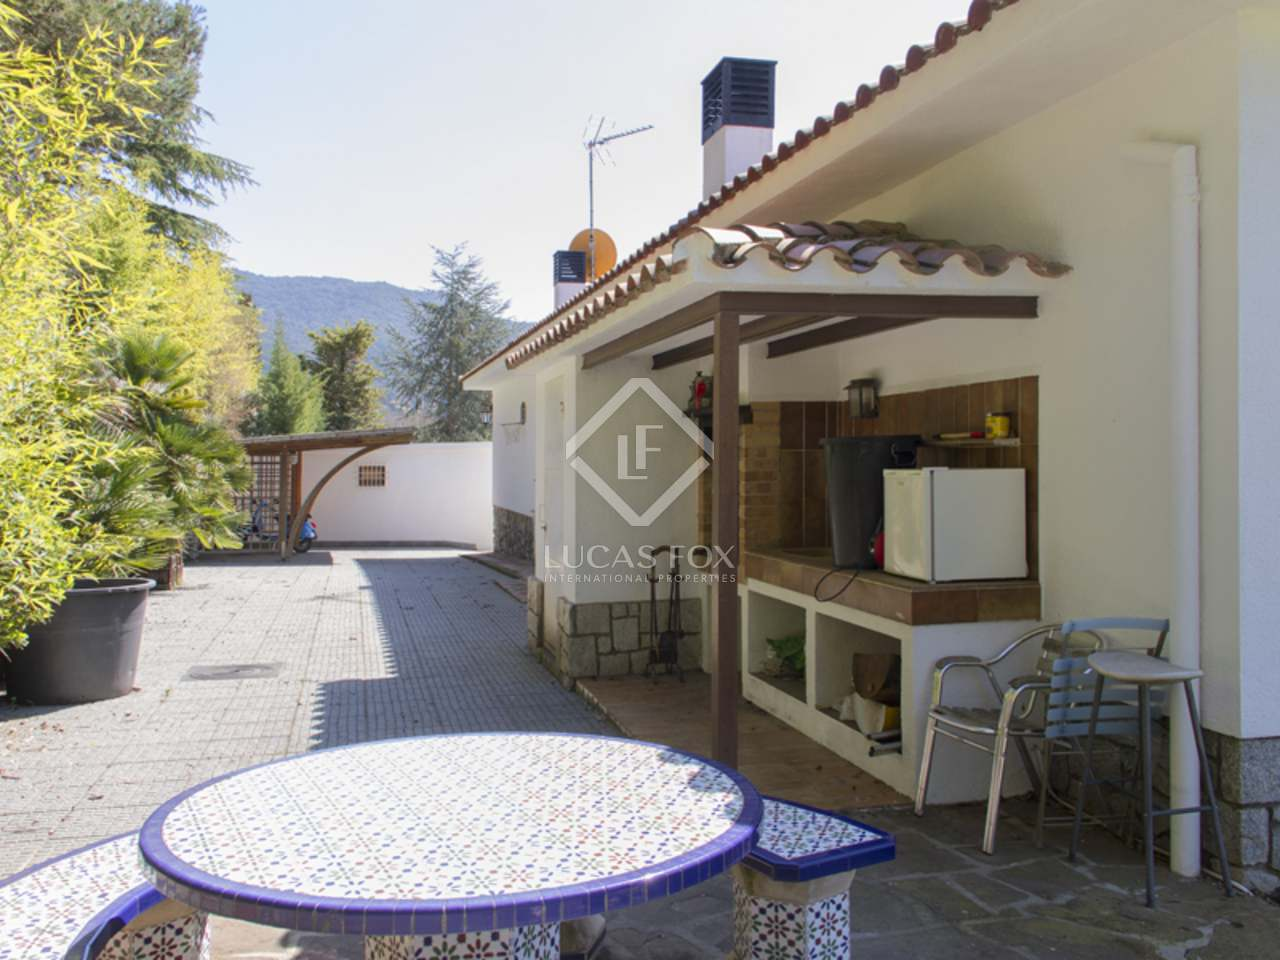 Mediterranean style villa for sale in vallromanes spain Mediterranean home decor for sale